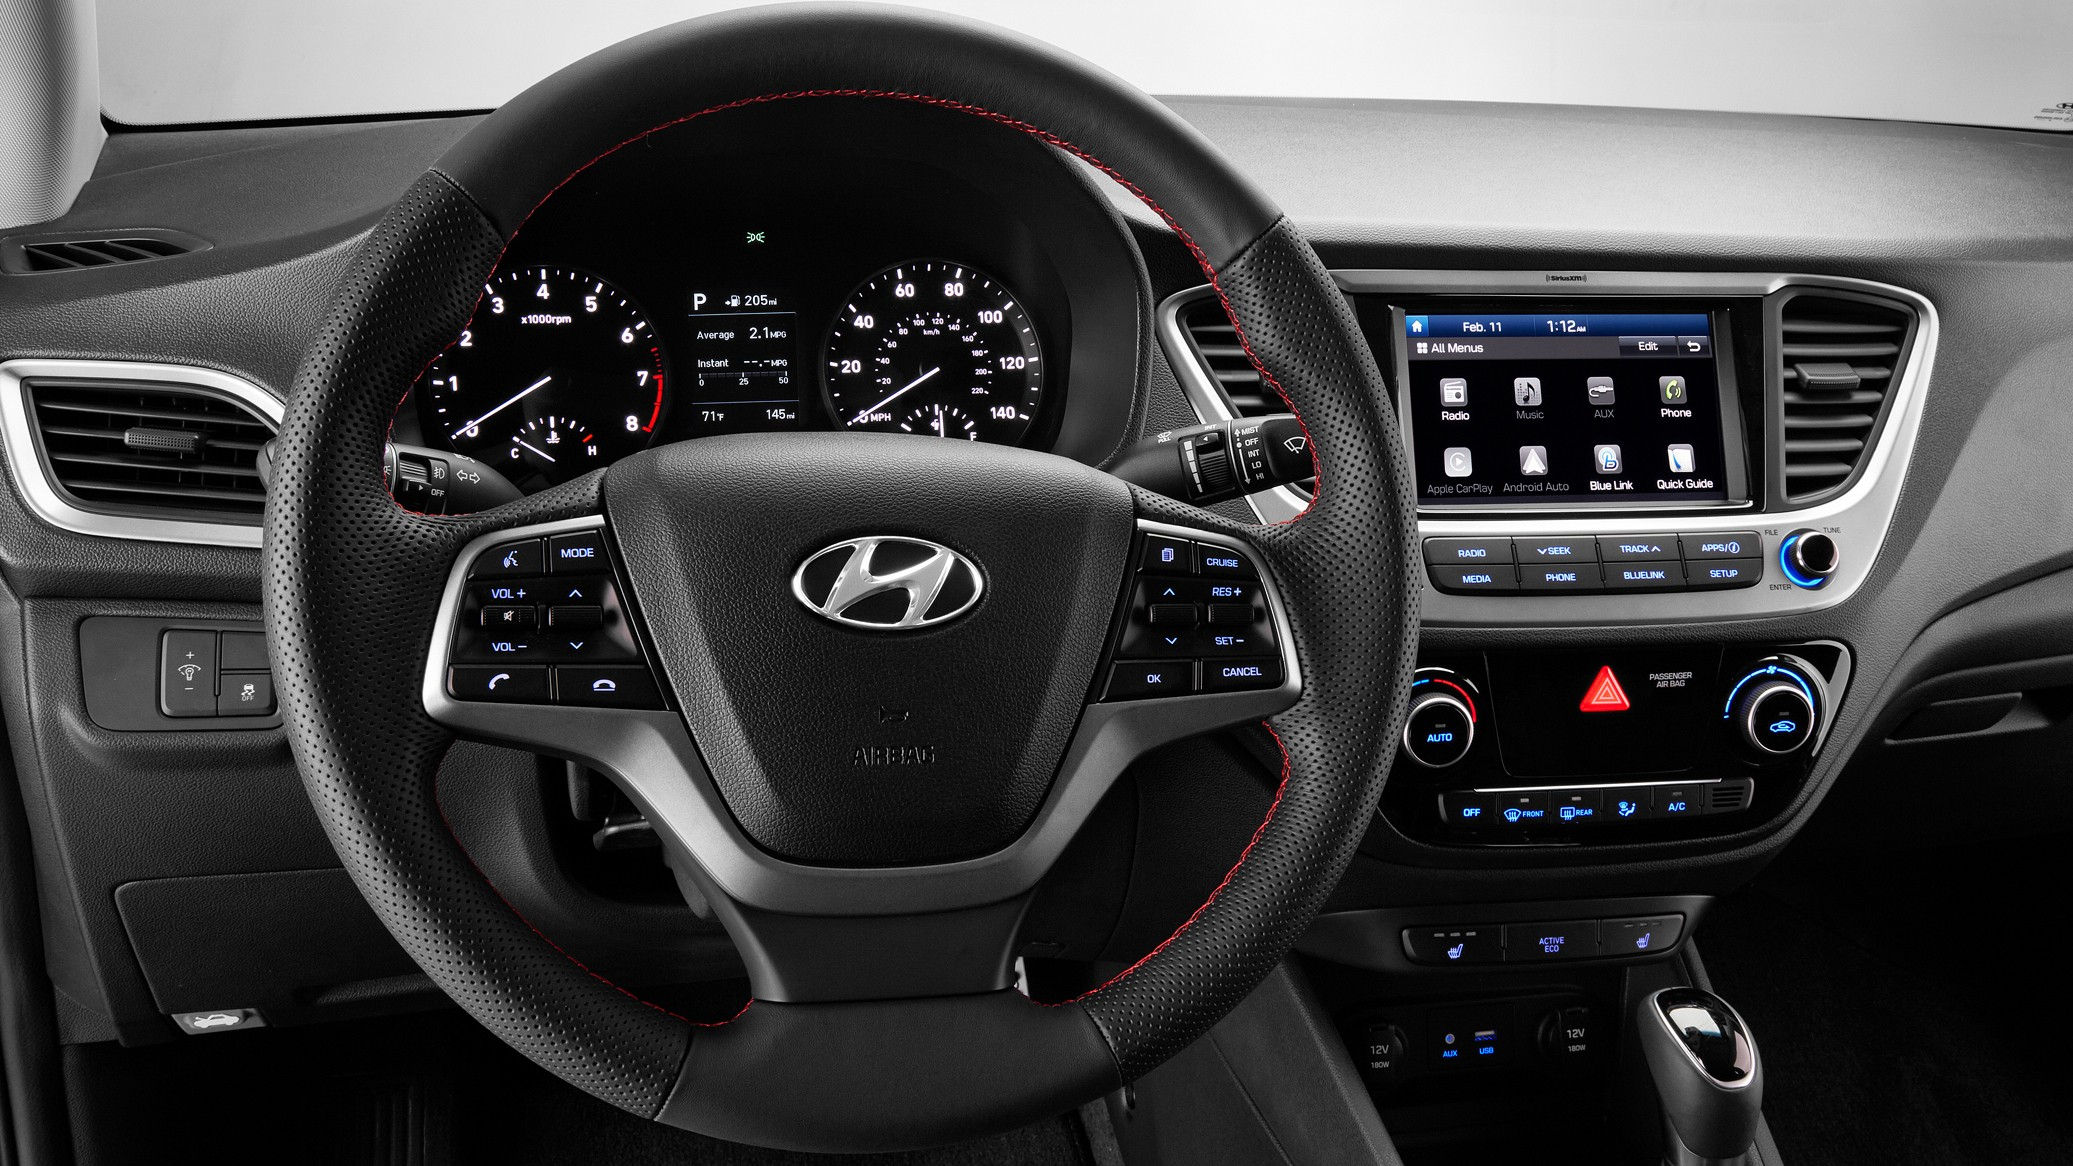 2018 Hyundai Accent Sedan Debuts At 2017 Canadian Auto Show, Hatchback To Follow - autoevolution